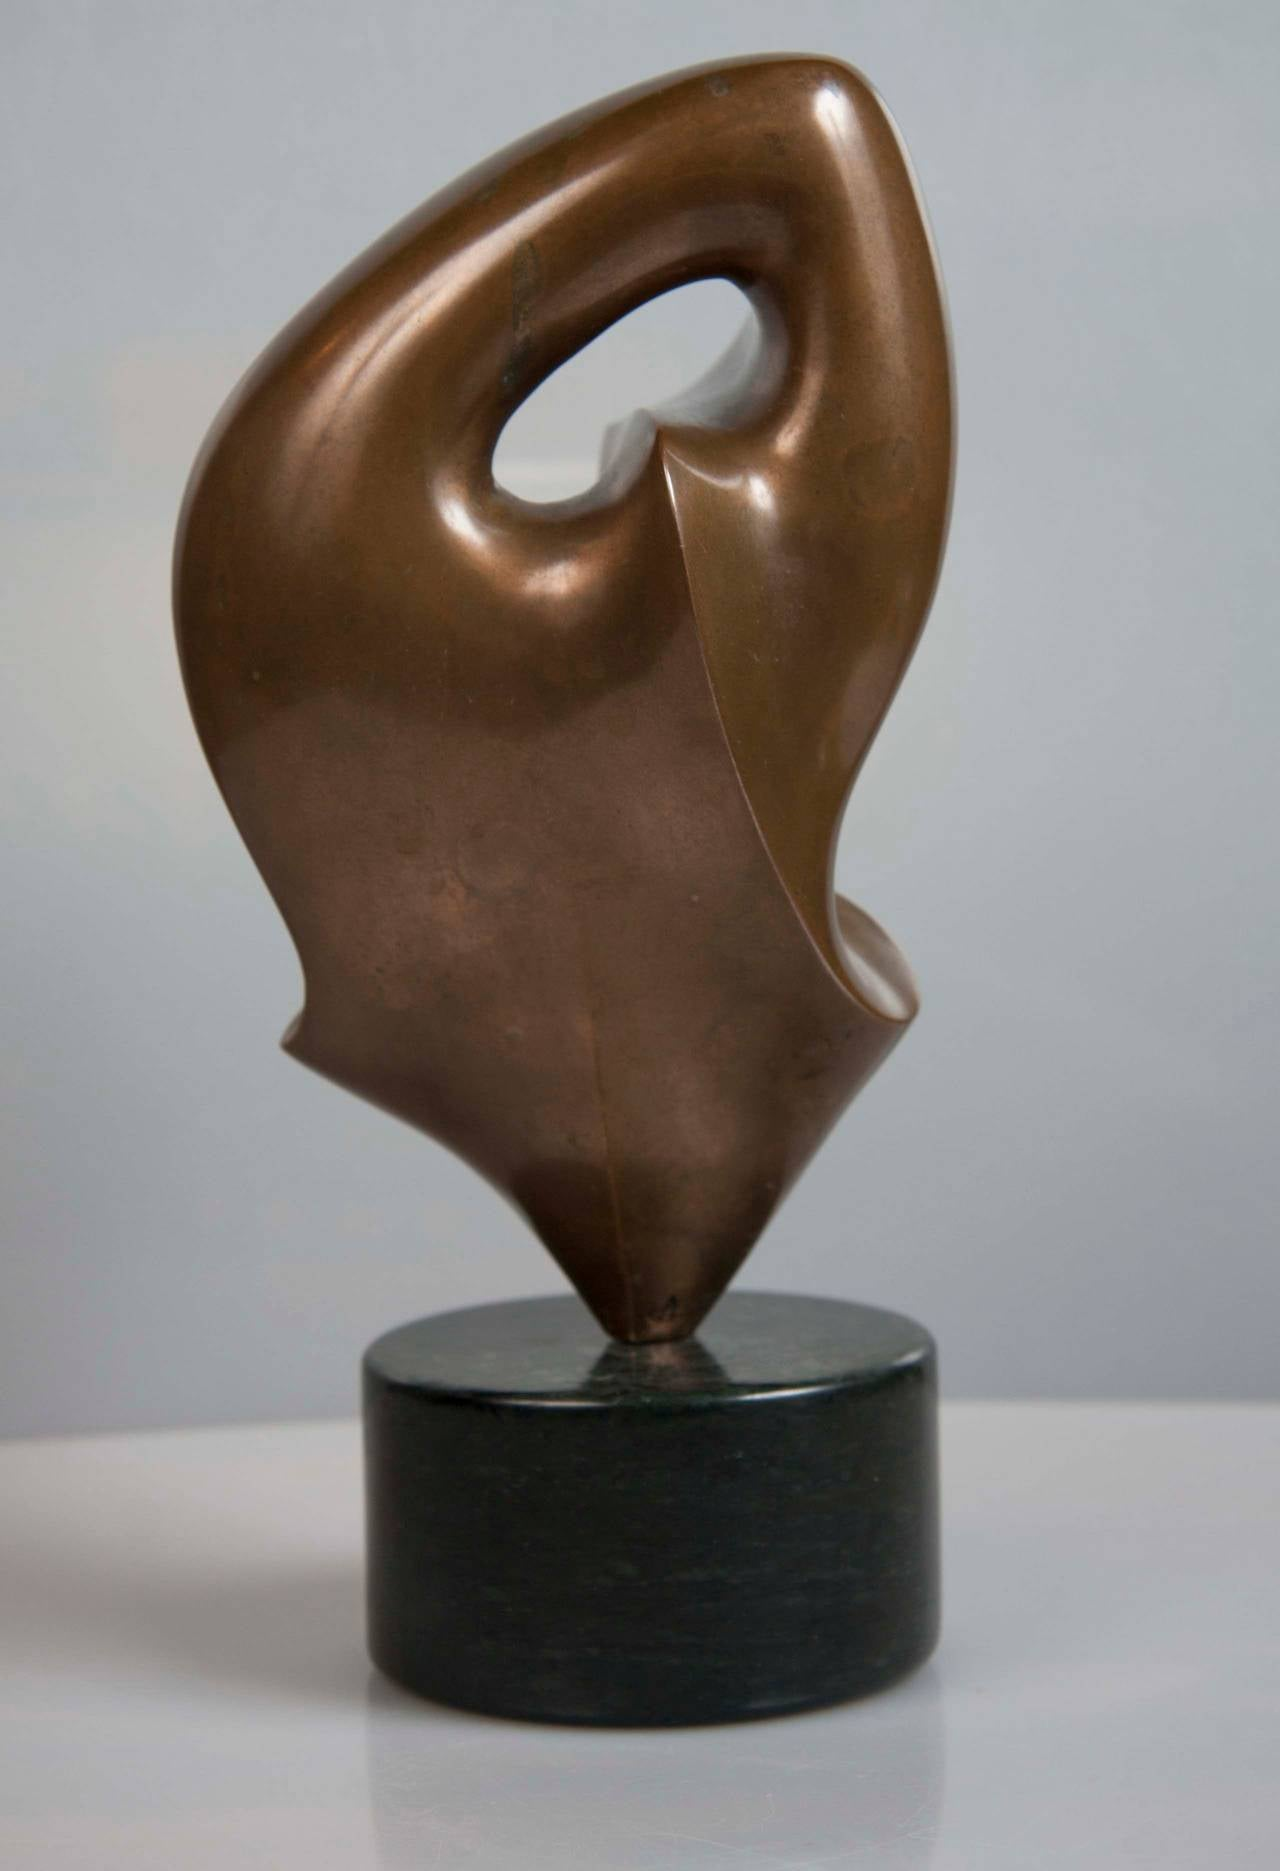 An abstract bronze sculpture by Swiss artist Antoine Poncet. (b. 1928) mounted on round marble base. Height of sculpture alone: 7 inches. Overall height is nine inches.